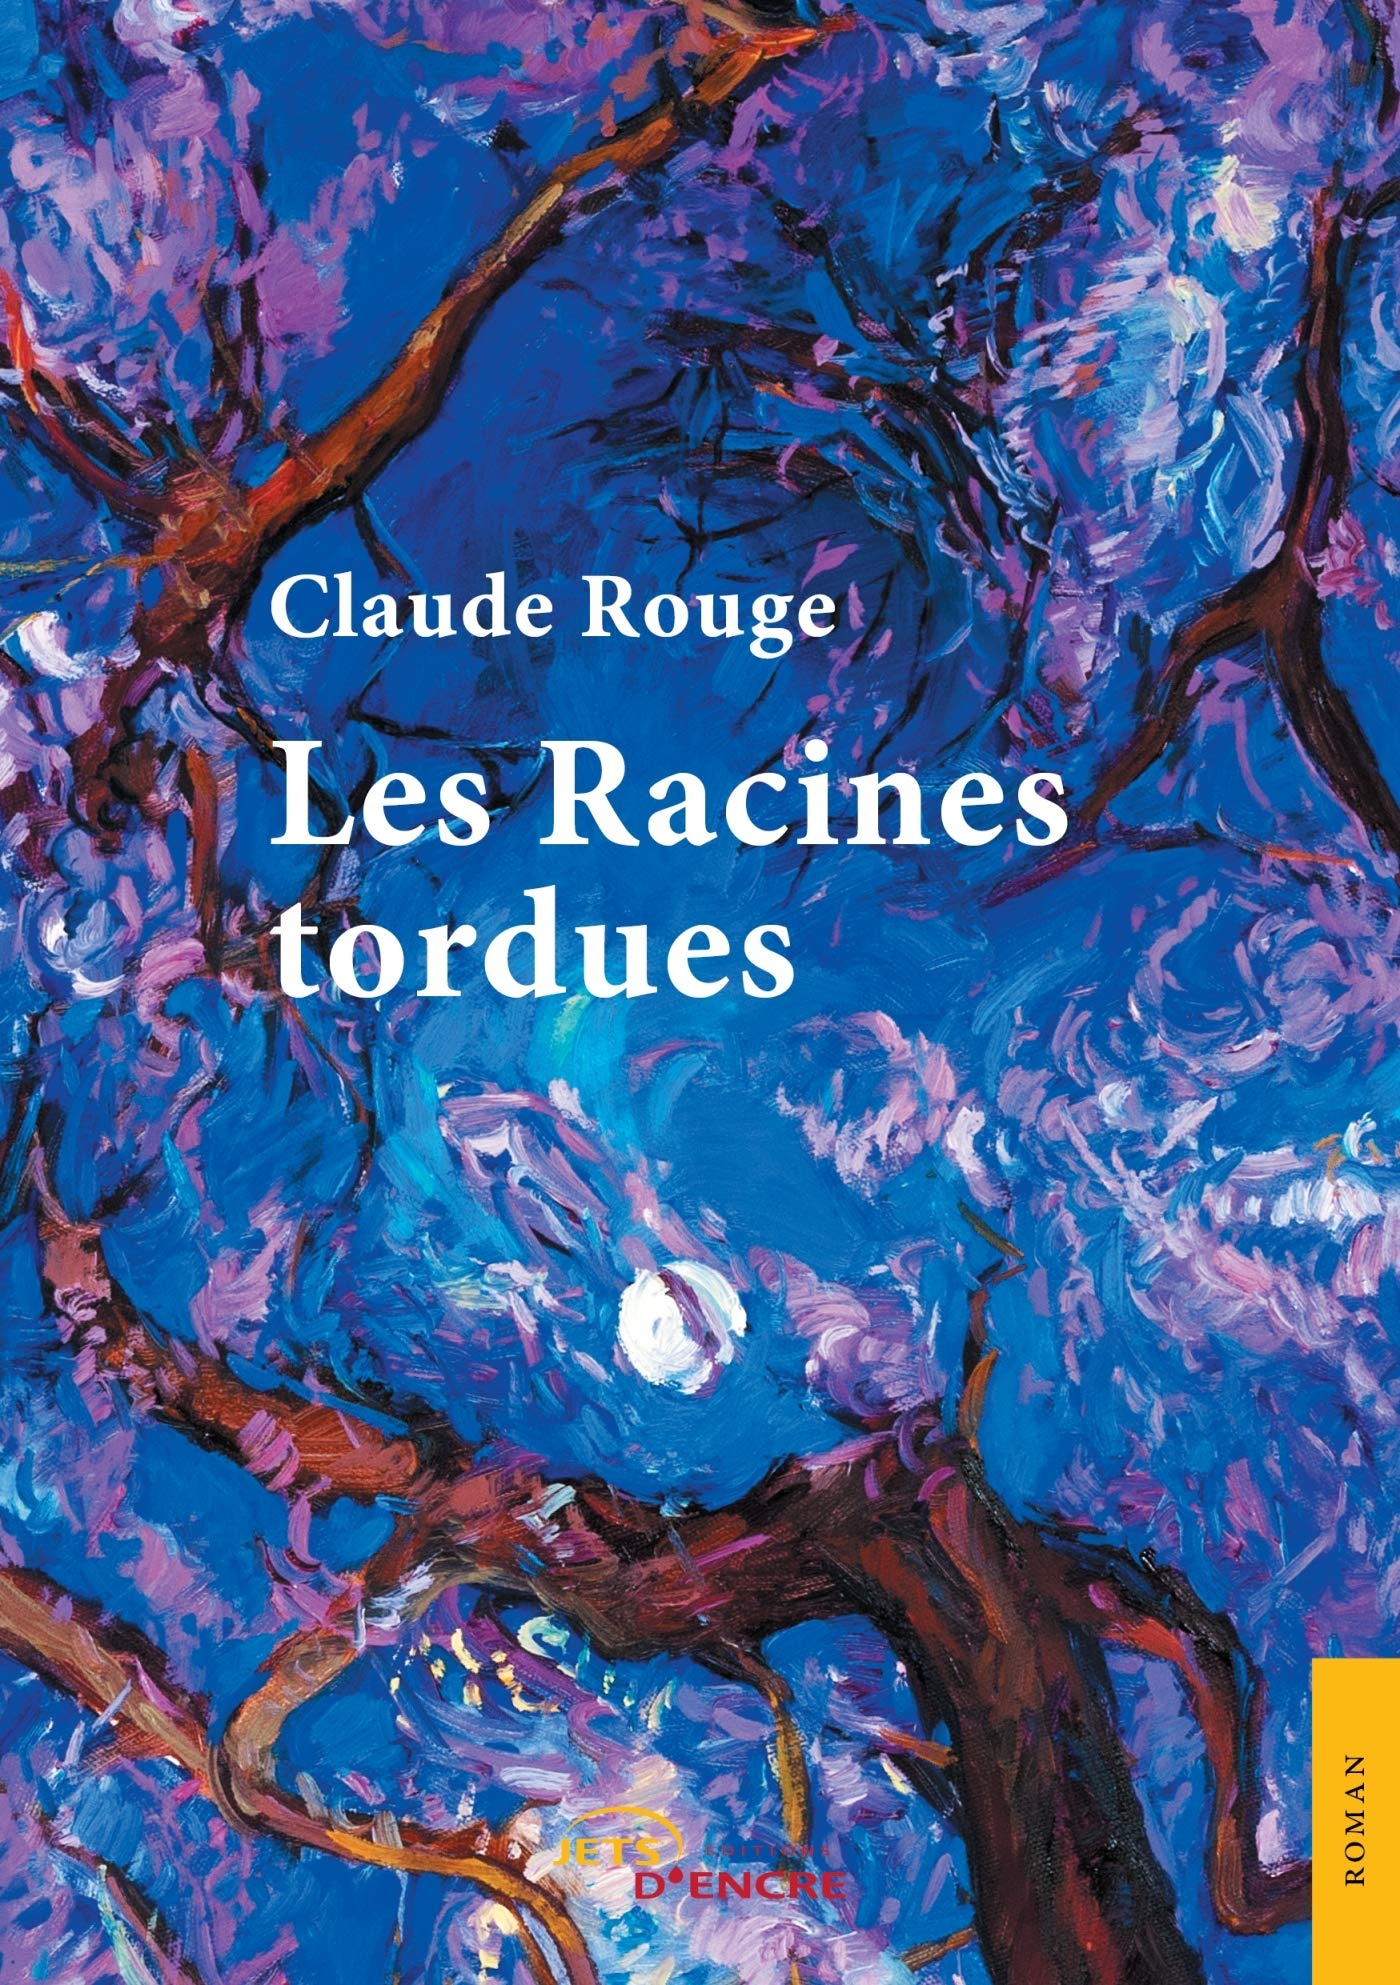 http://www.radio-couleur-chartreuse.org/wp-content/uploads/2020/03/81T1sppRFML.jpg